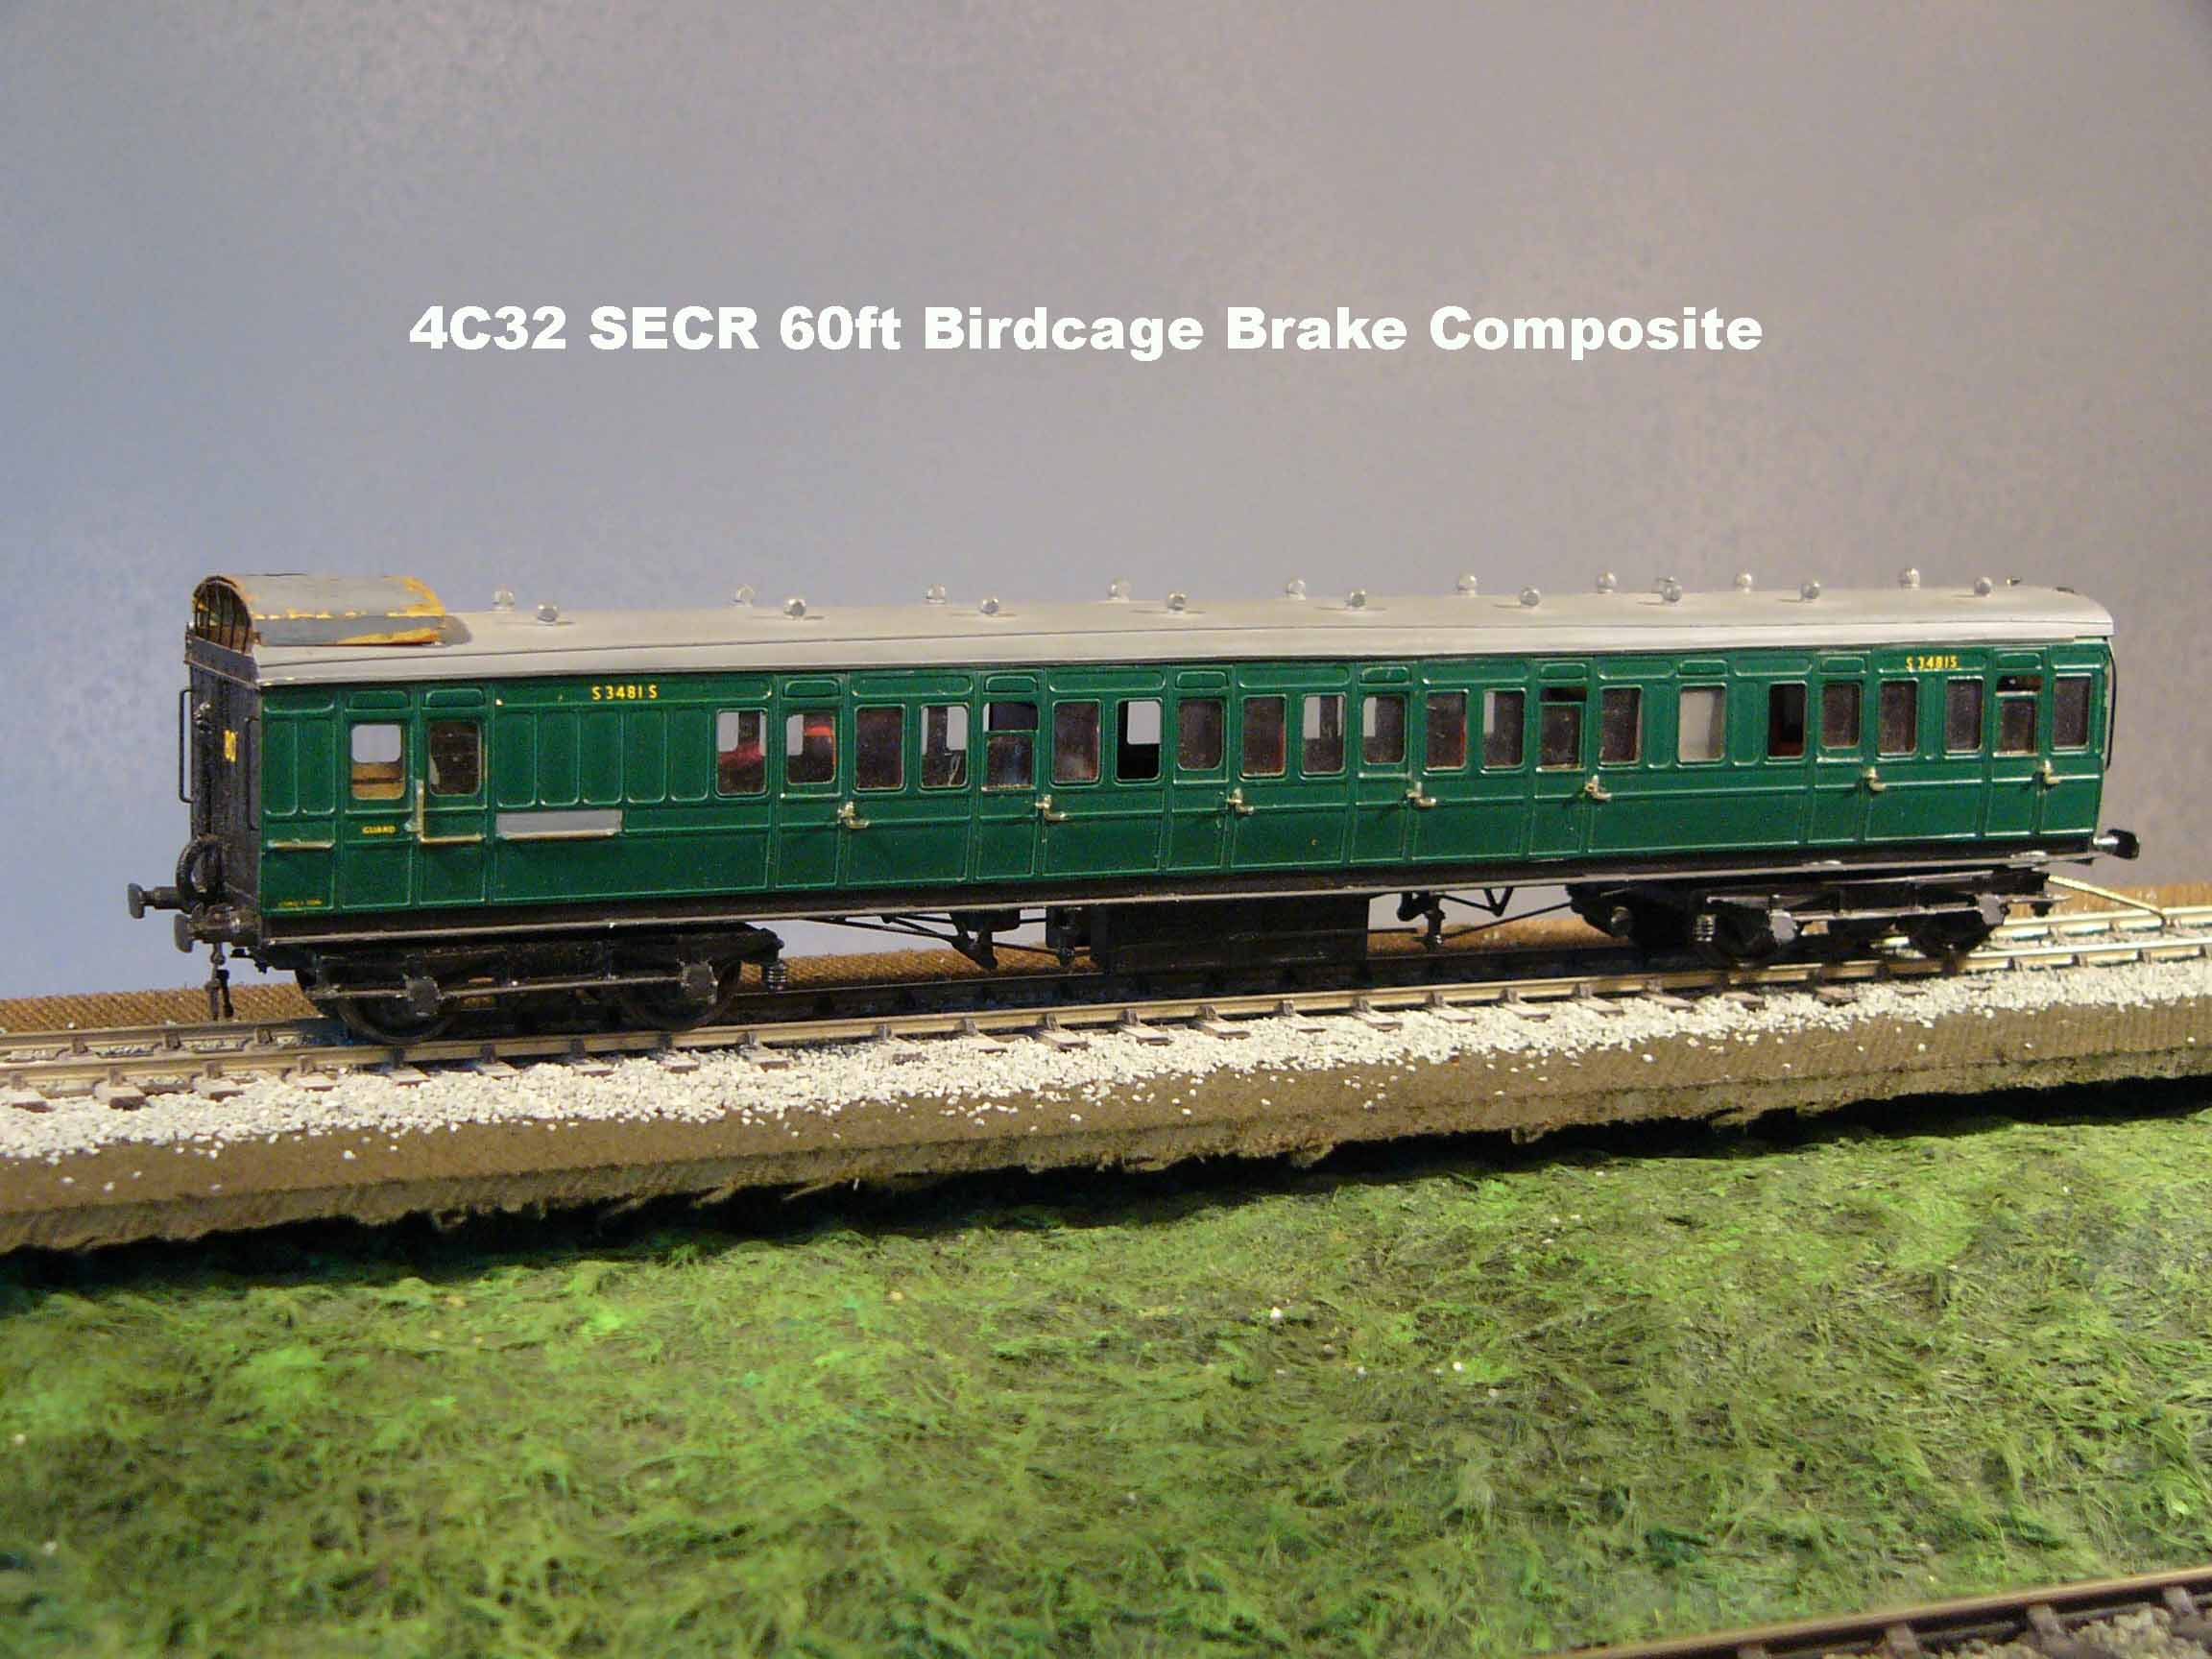 7C32 SECR 60ft Birdcage Brake Composite